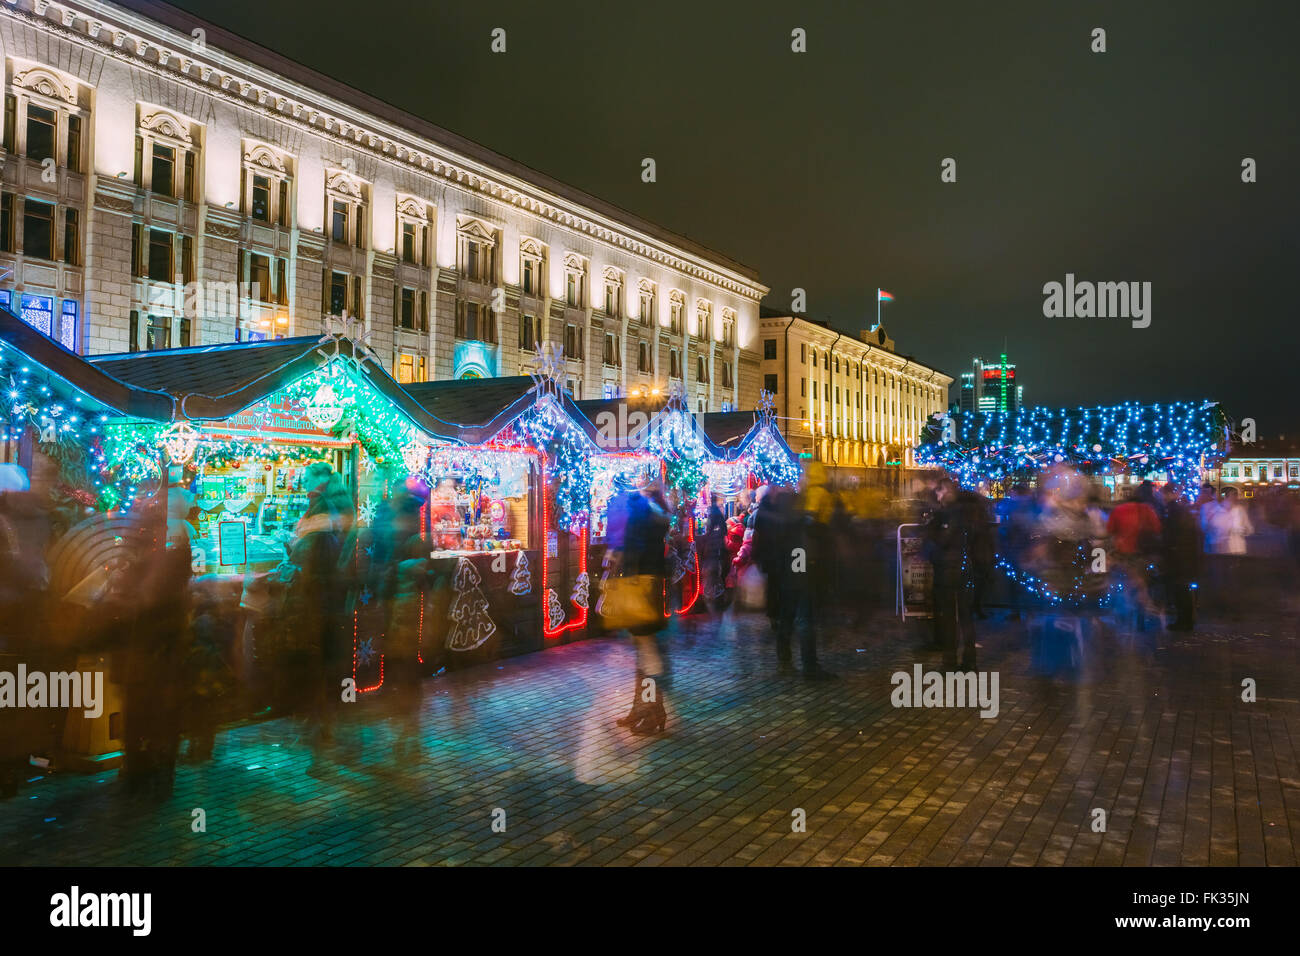 City Christmas Shopping arcade with a festive New Year's attributes in town square in Minsk, Belarus. - Stock Image